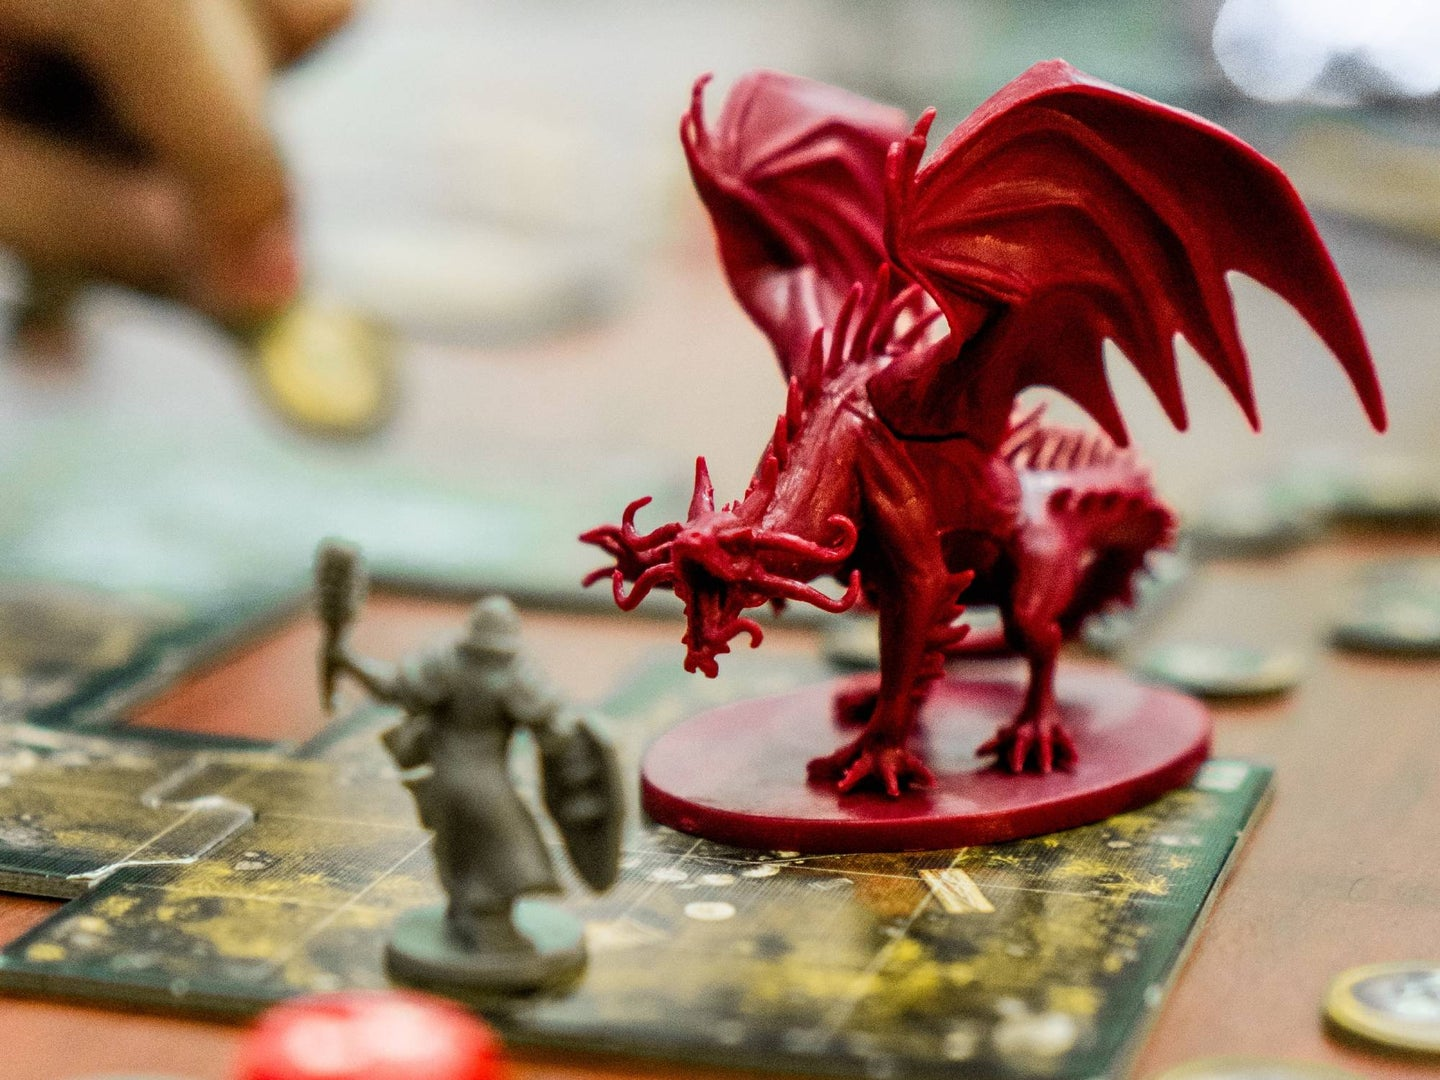 A plastic piece depicting a menacing plastic dragon on a board game